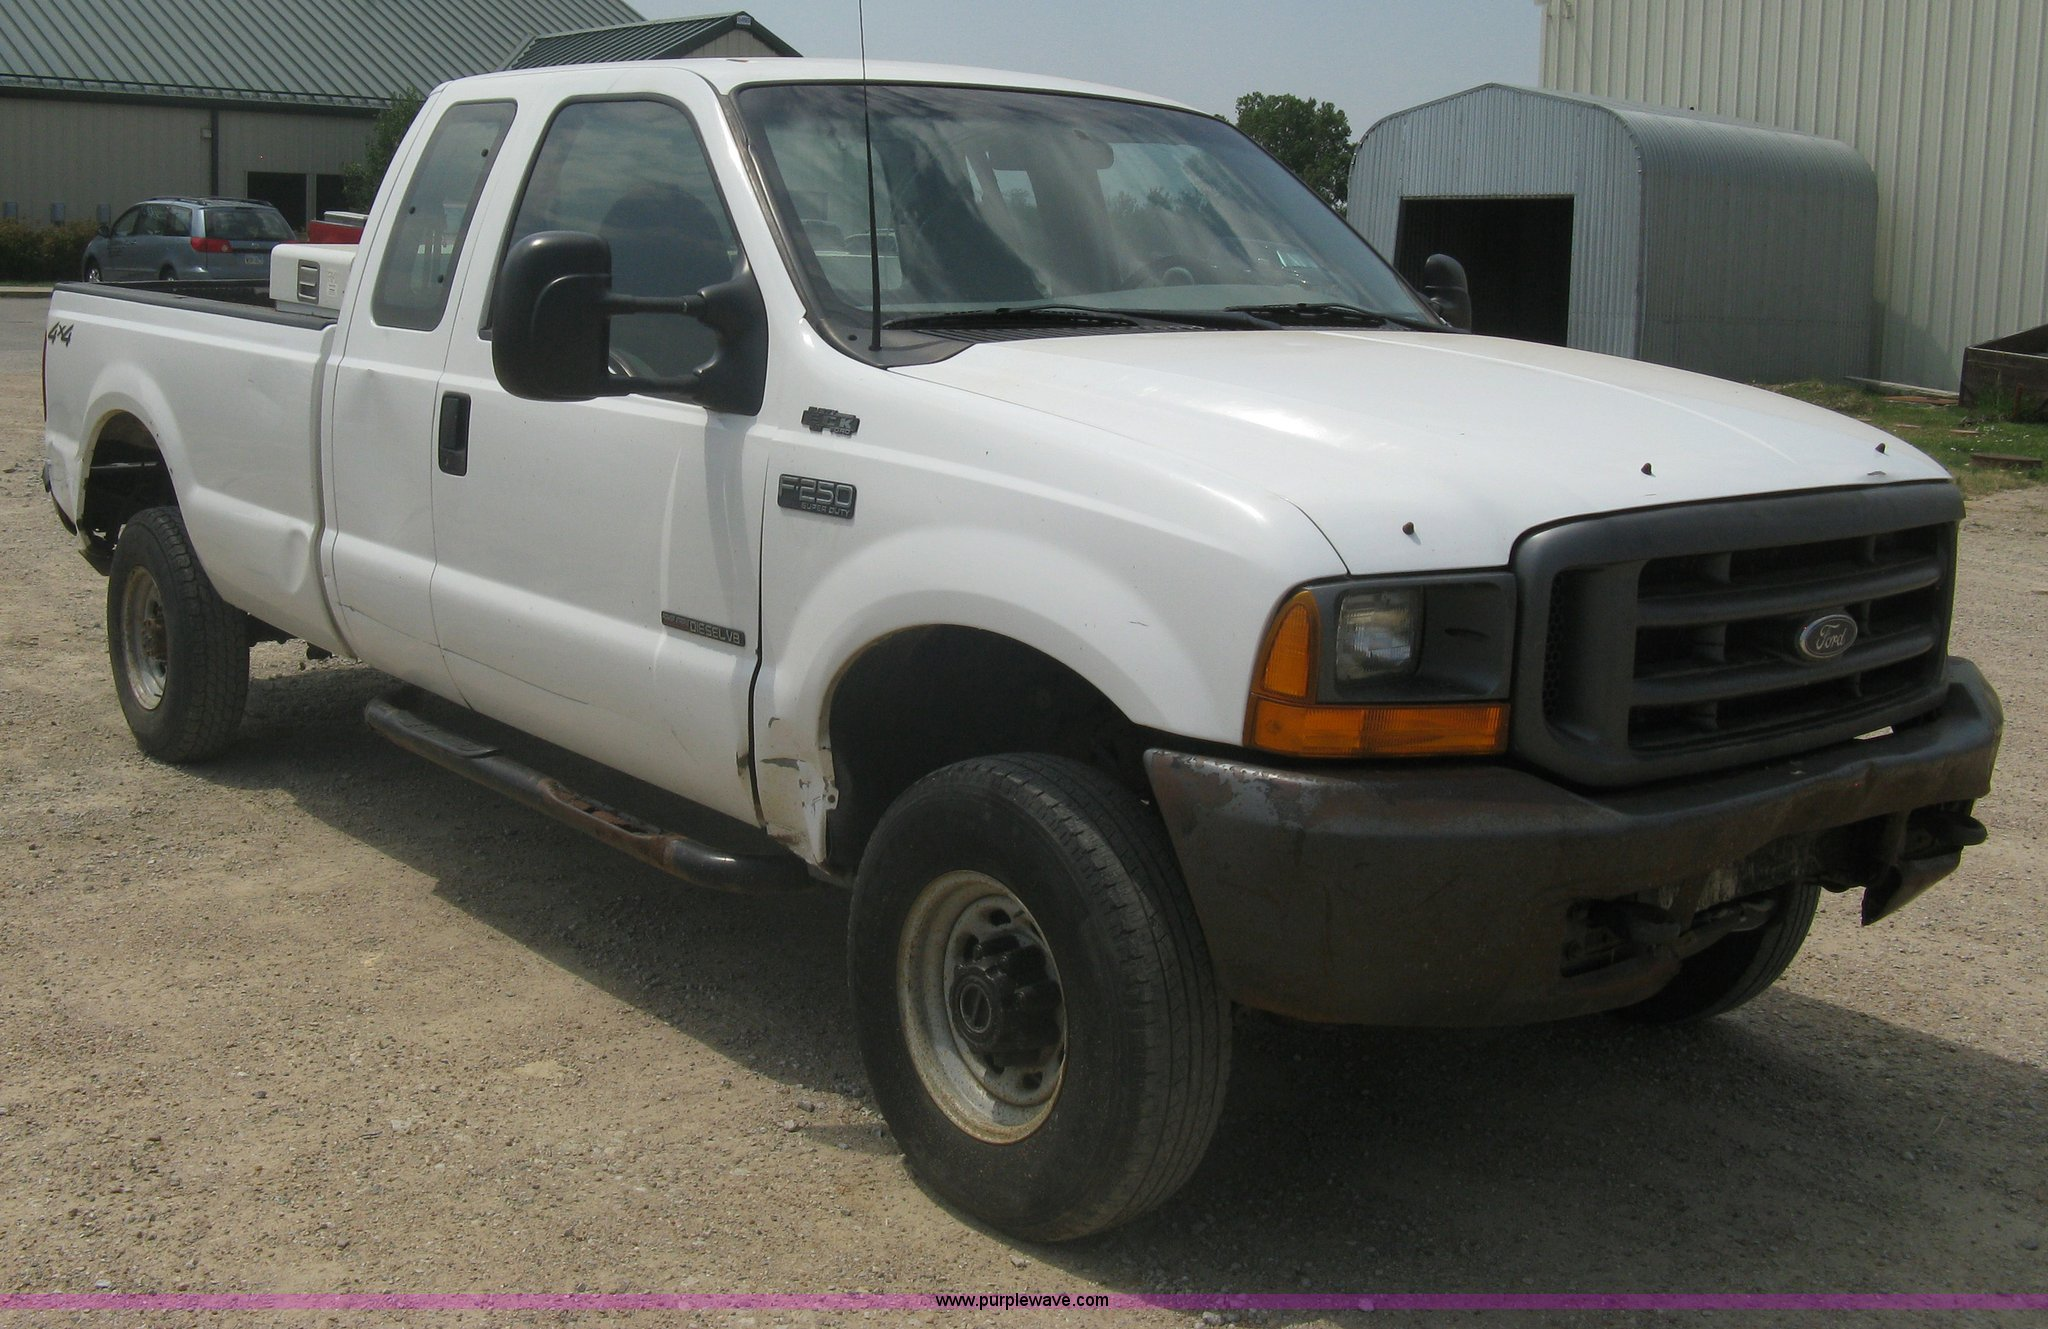 A6451 image for item a6451 1999 ford f250 super duty